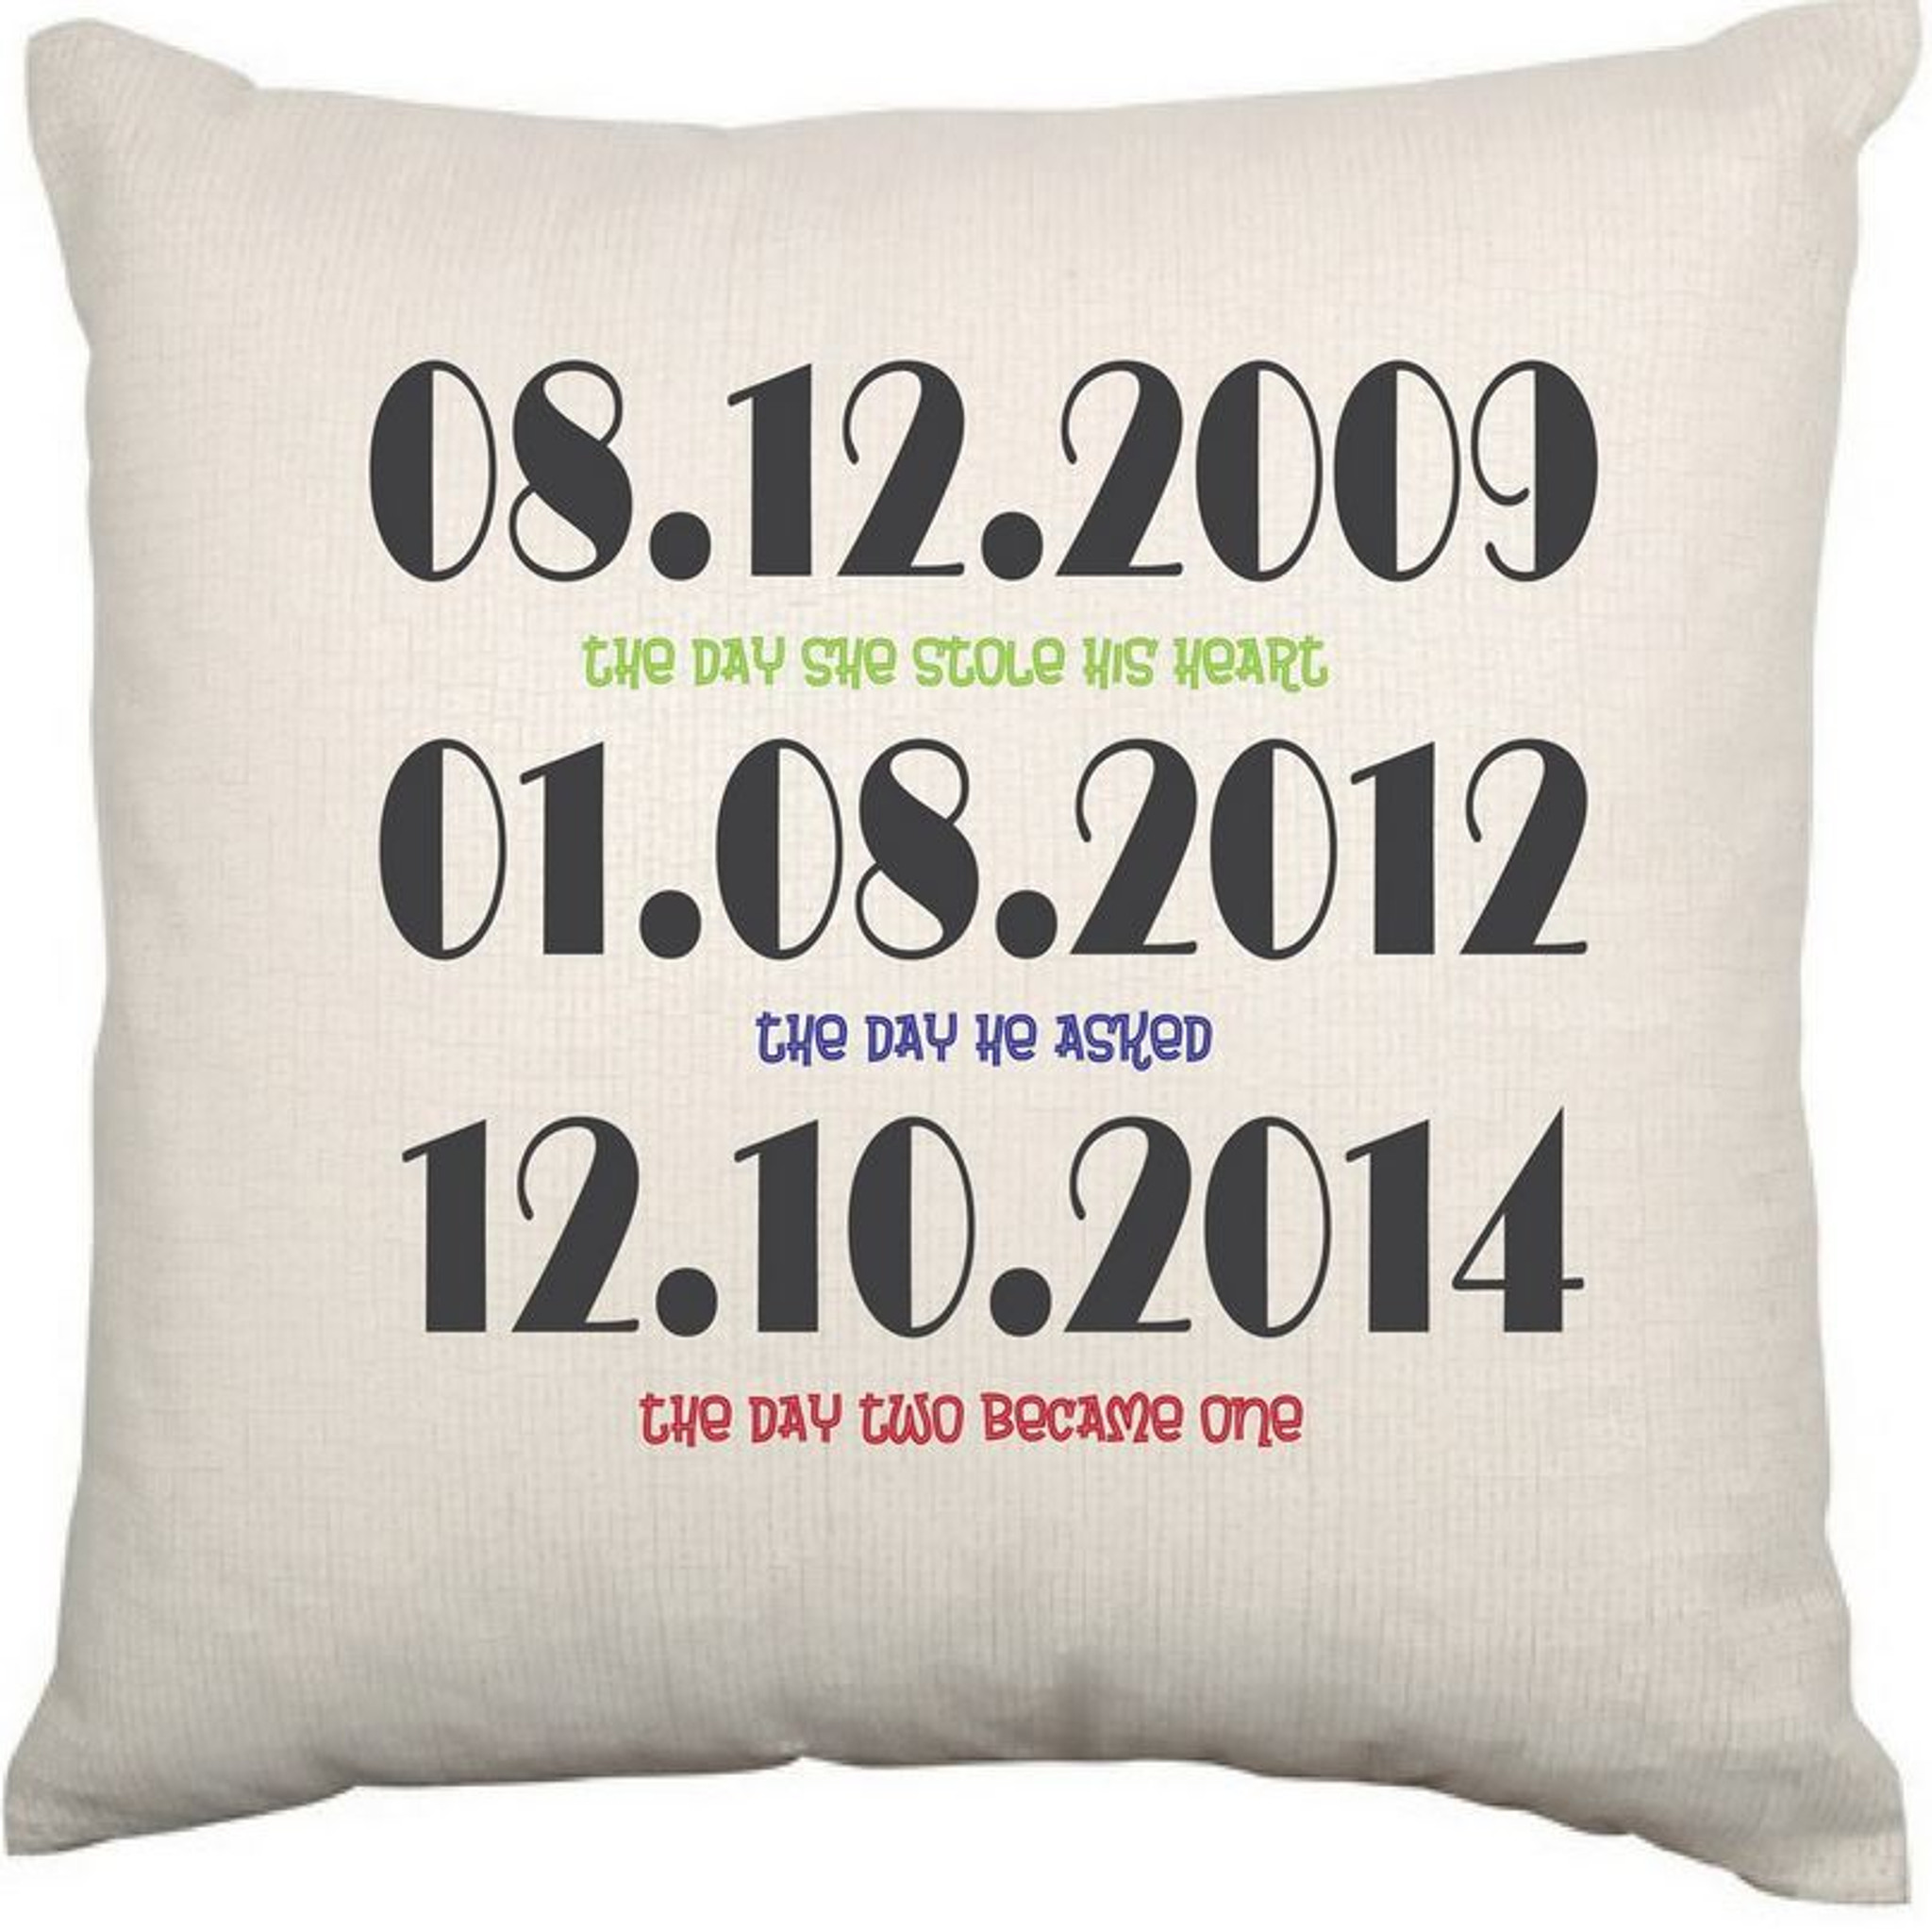 Personalised Couples Cushion Cover (Dates) c2af807ccf01